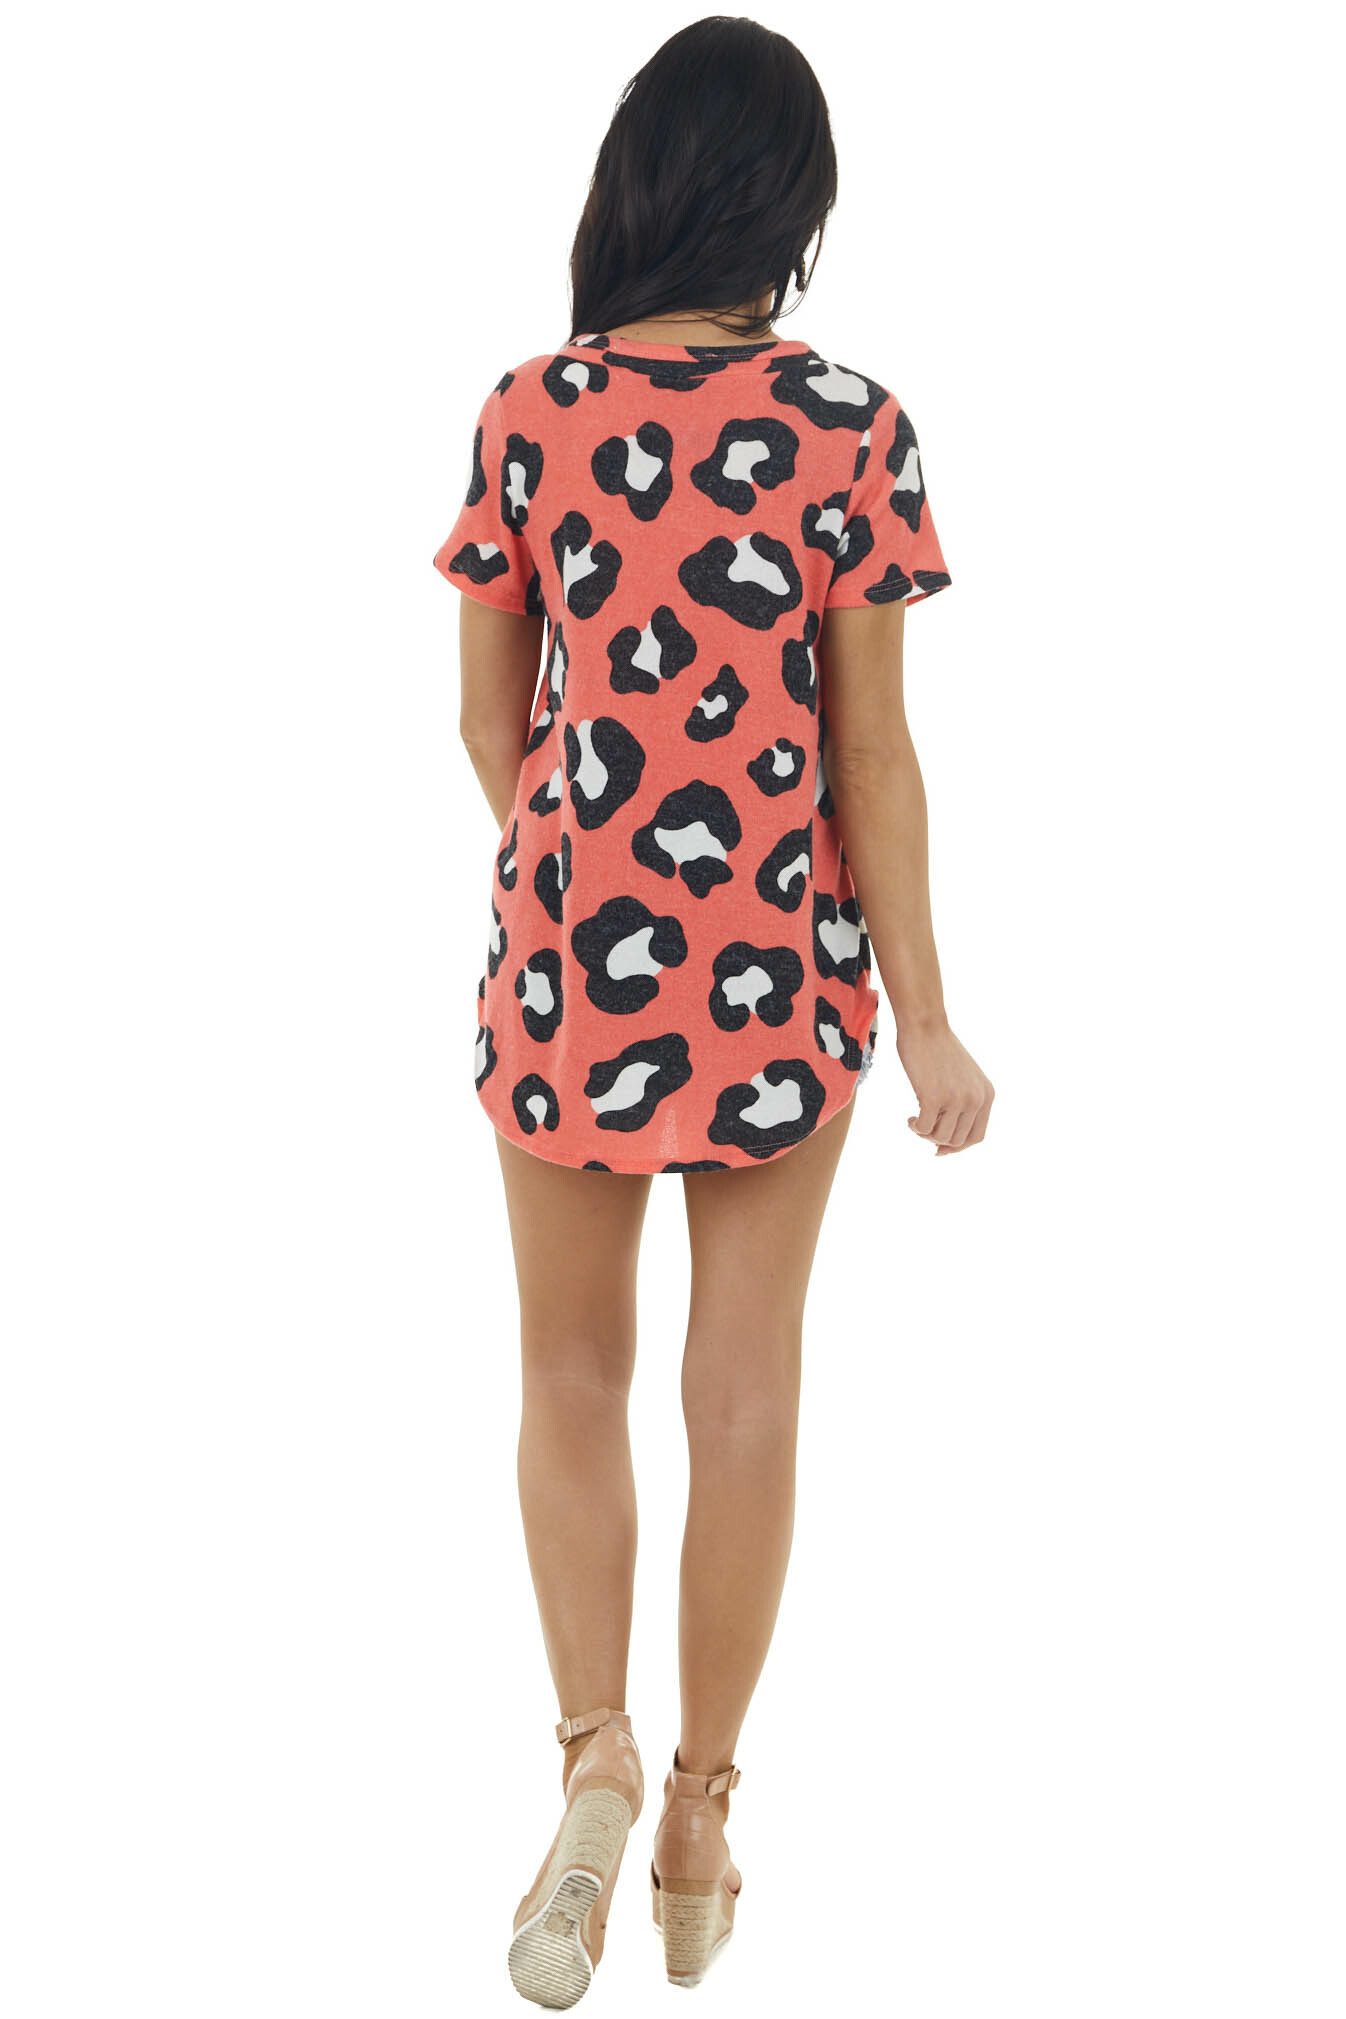 Bright Coral Leopard Print Short Sleeve Knit Top with V Neck